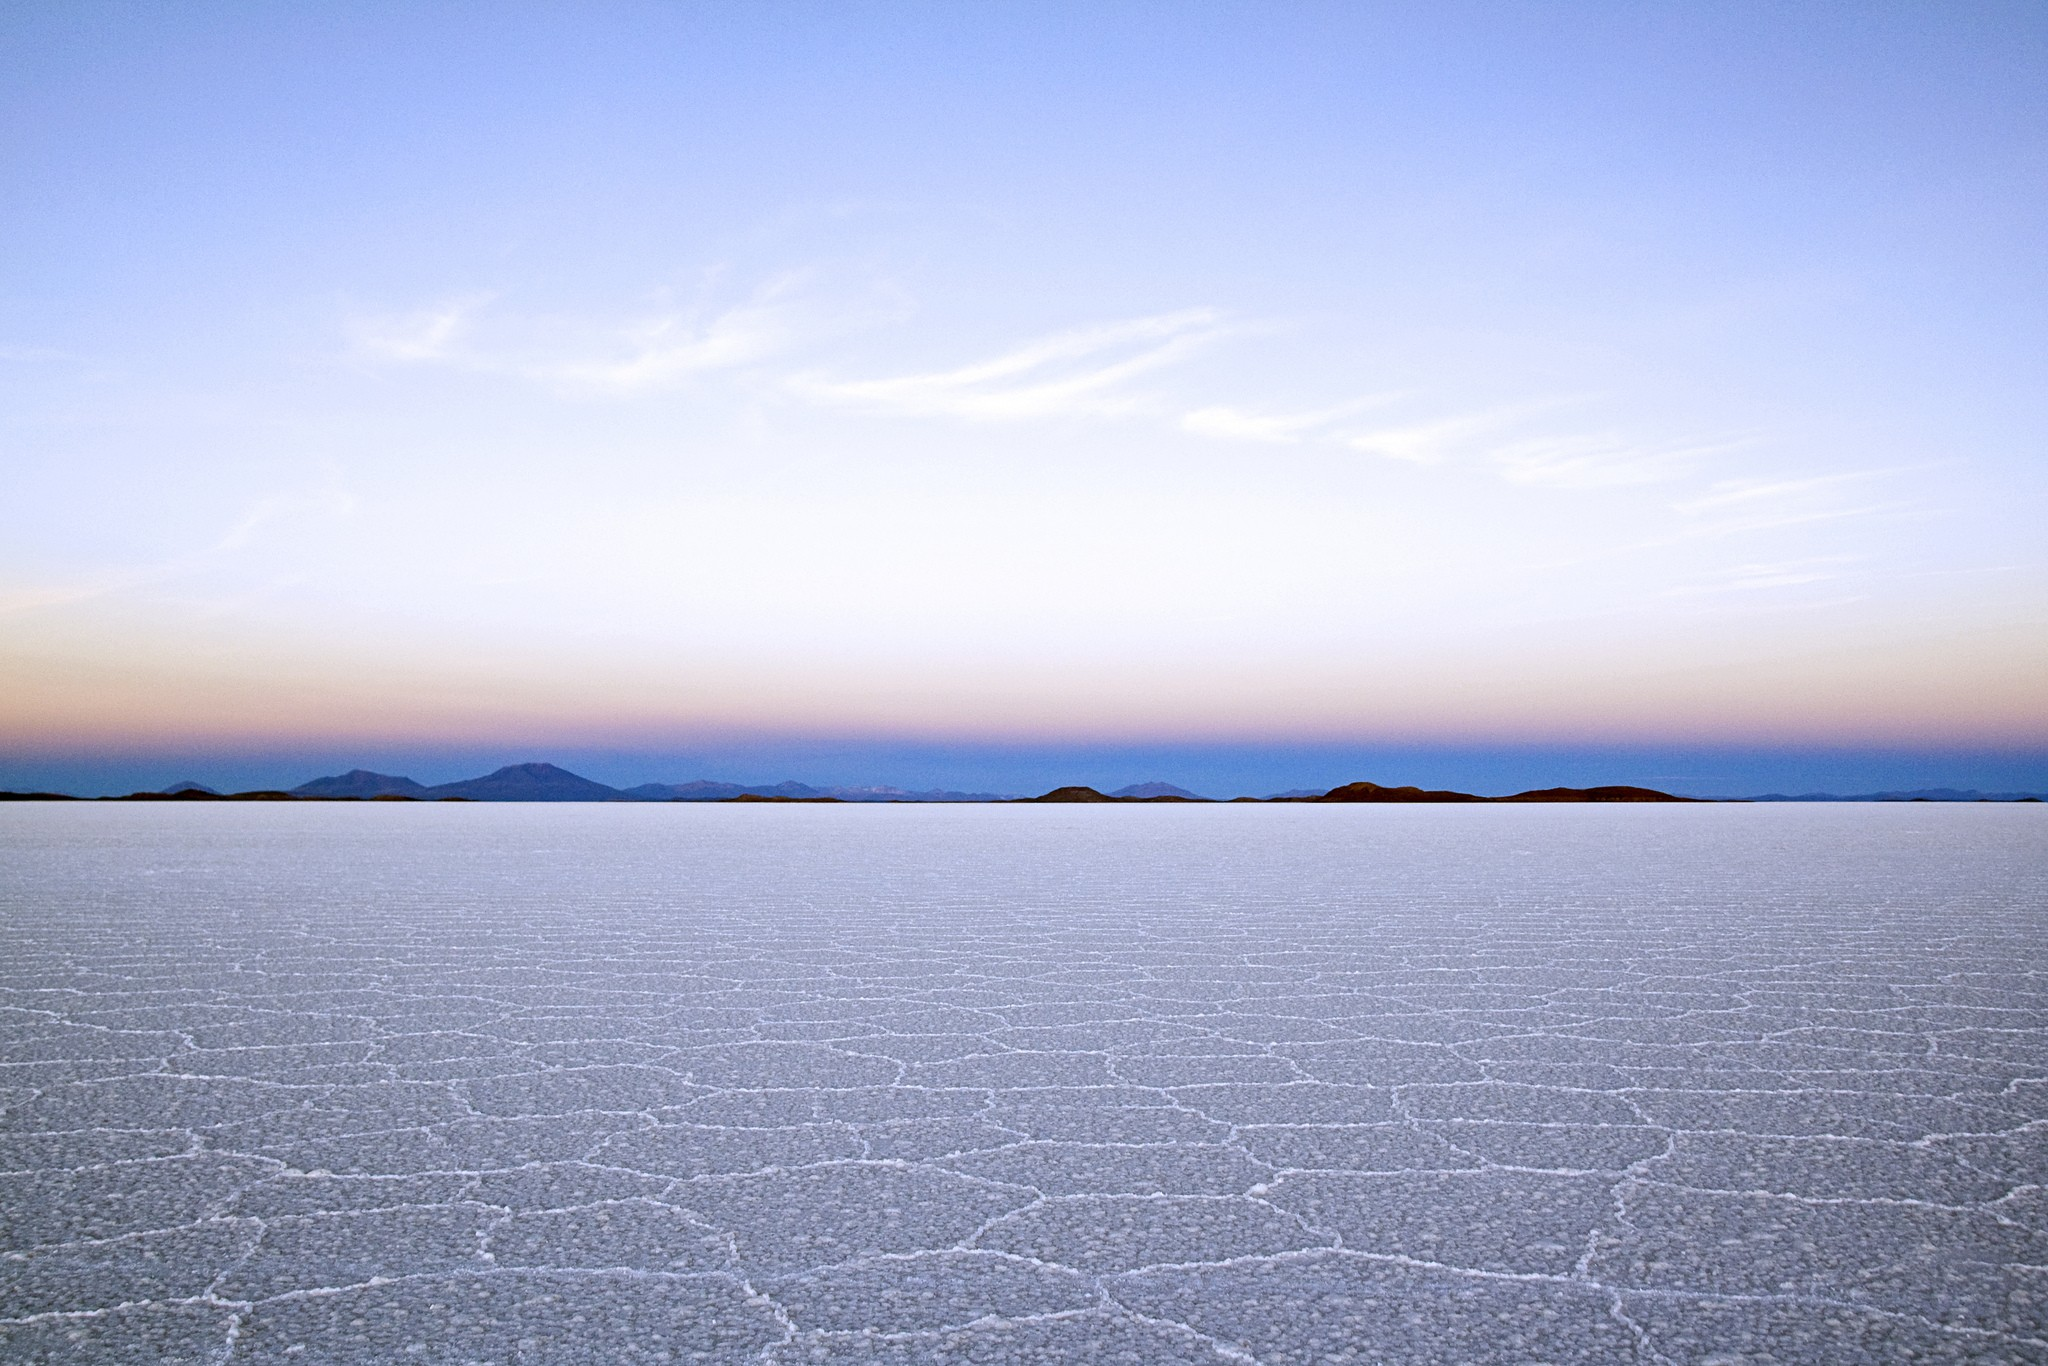 Salar de Uyuni, na Bolívia (Foto: Flickr/ Dimitry B./ Creative Commons)